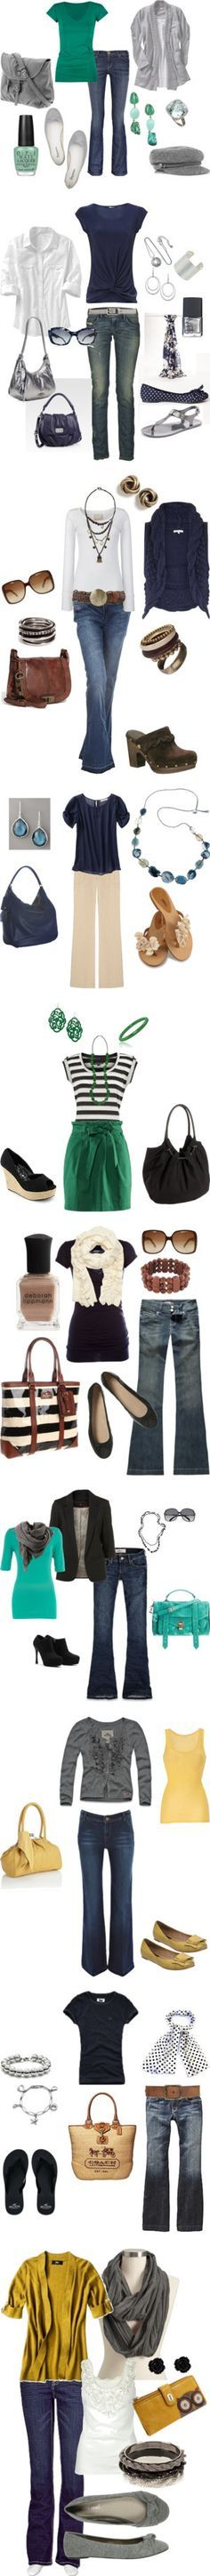 """""""Teaching"""" by ashley-toomey ❤ liked on Polyvore"""